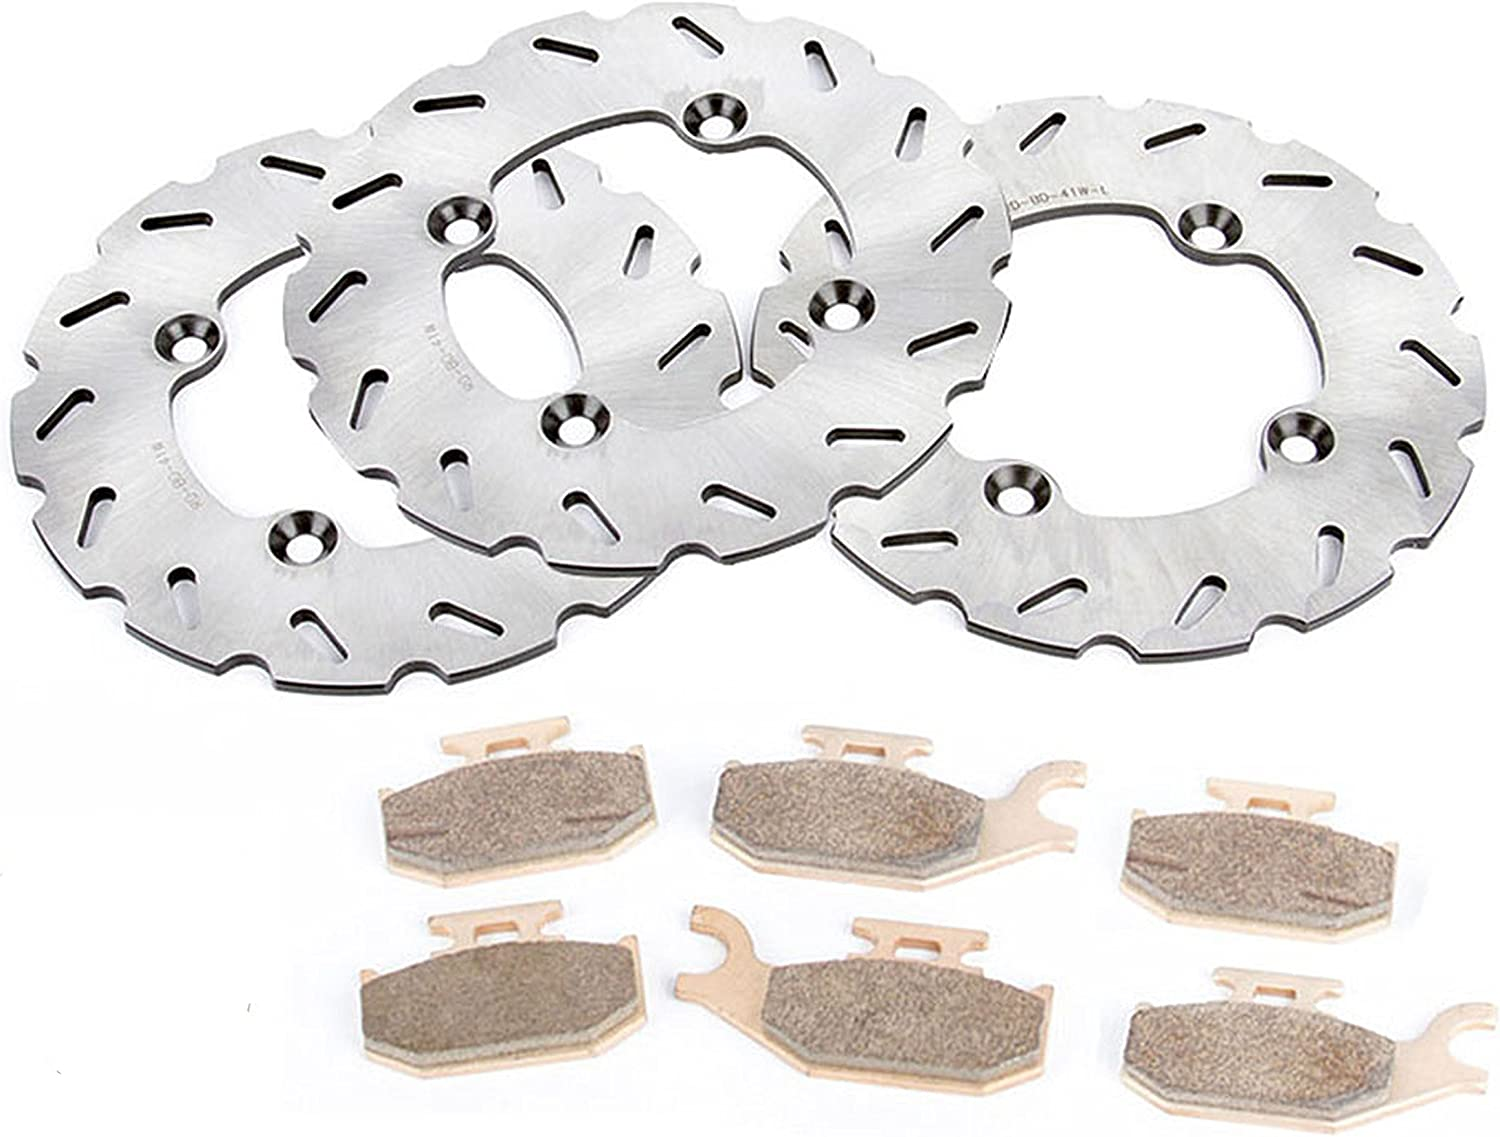 16 Sets 2012 2013 Can-Am Renegade 800 XXC 800R Front and Rear Brake Pads